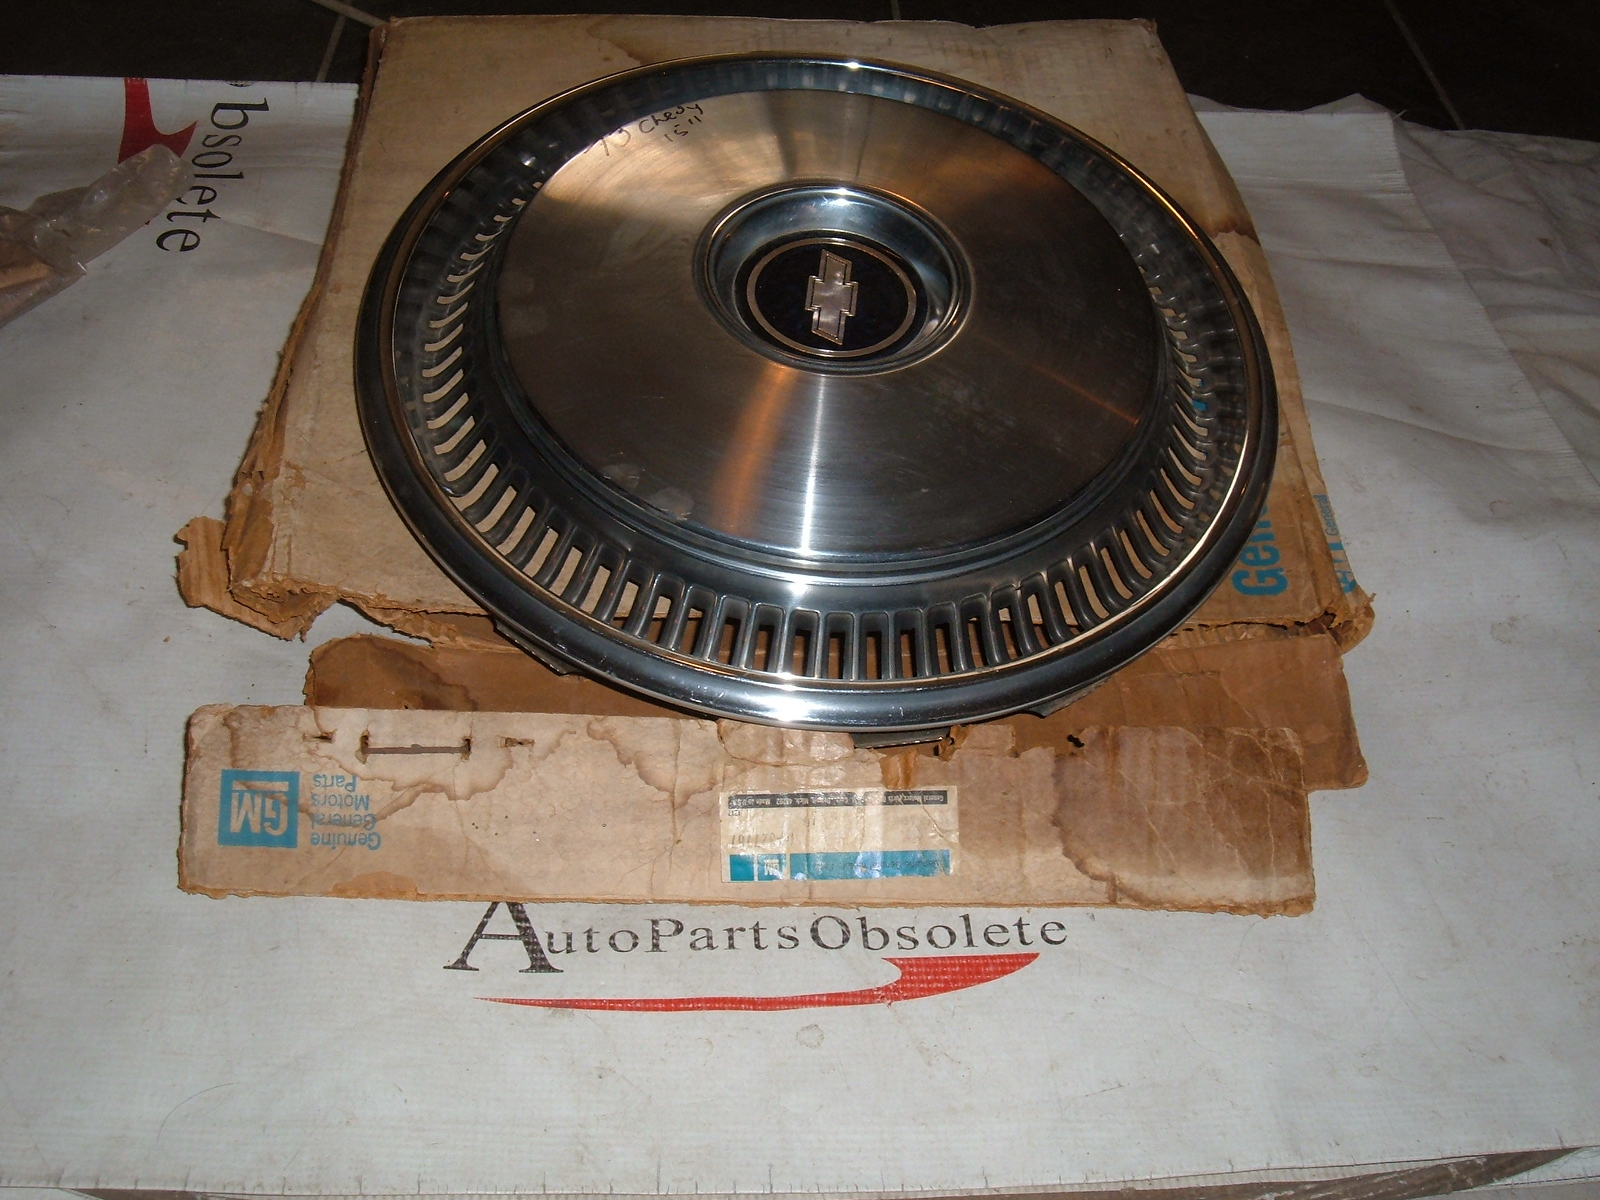 1973 Chevrolet Caprice hubcap NOS GM # 327767 15 inch (z 327767)